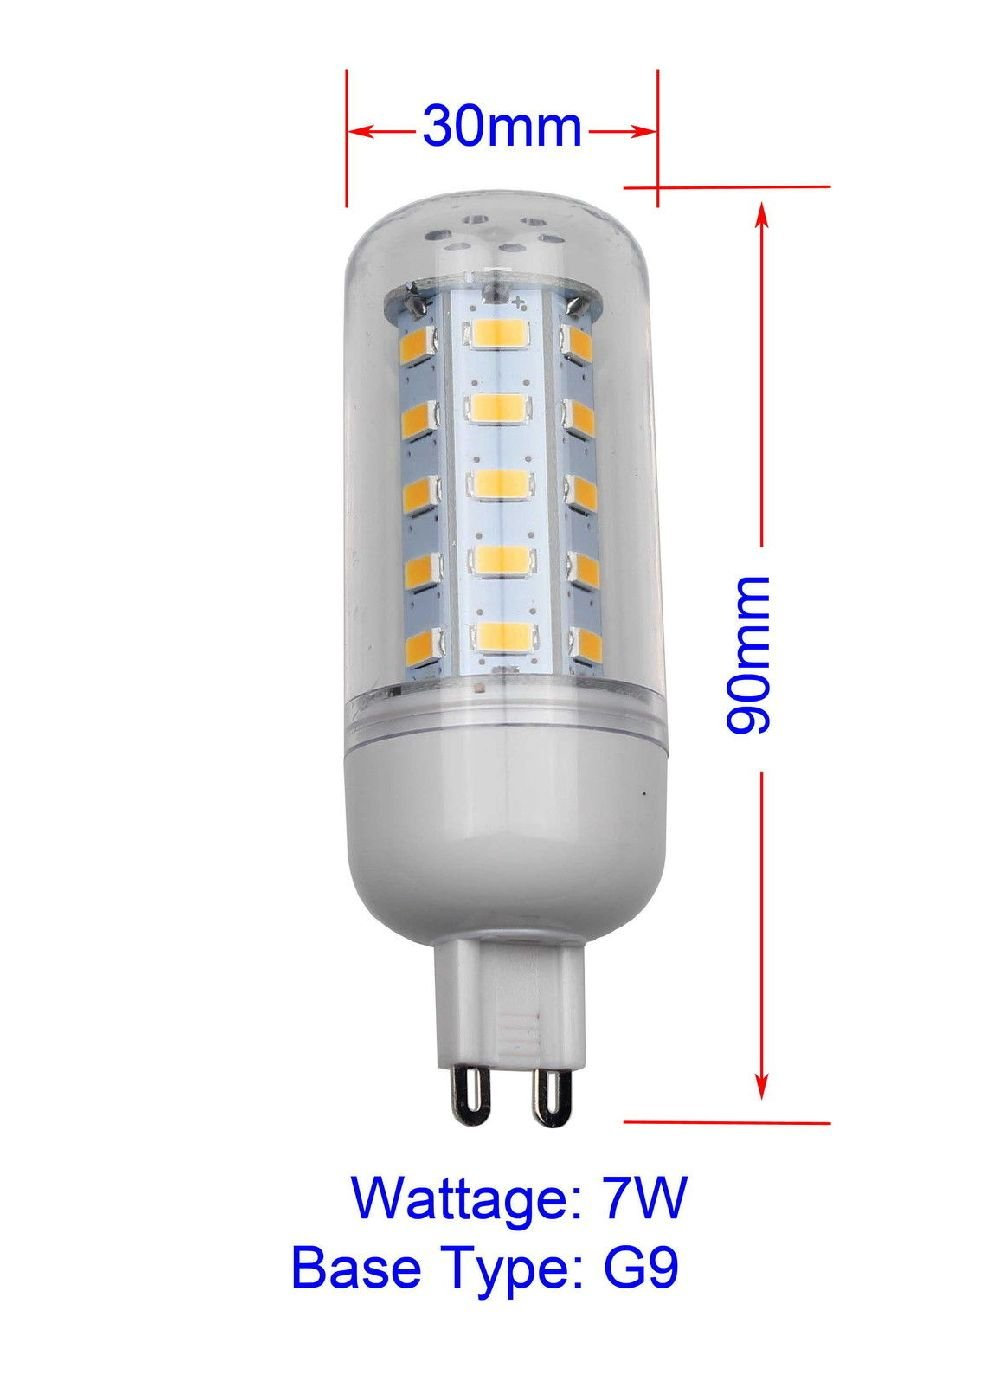 E12 E26 G9 110V LED Corn Light Bulb Lamp 5W 7W 9W 12W Warm / Cool White Bright by unbrand